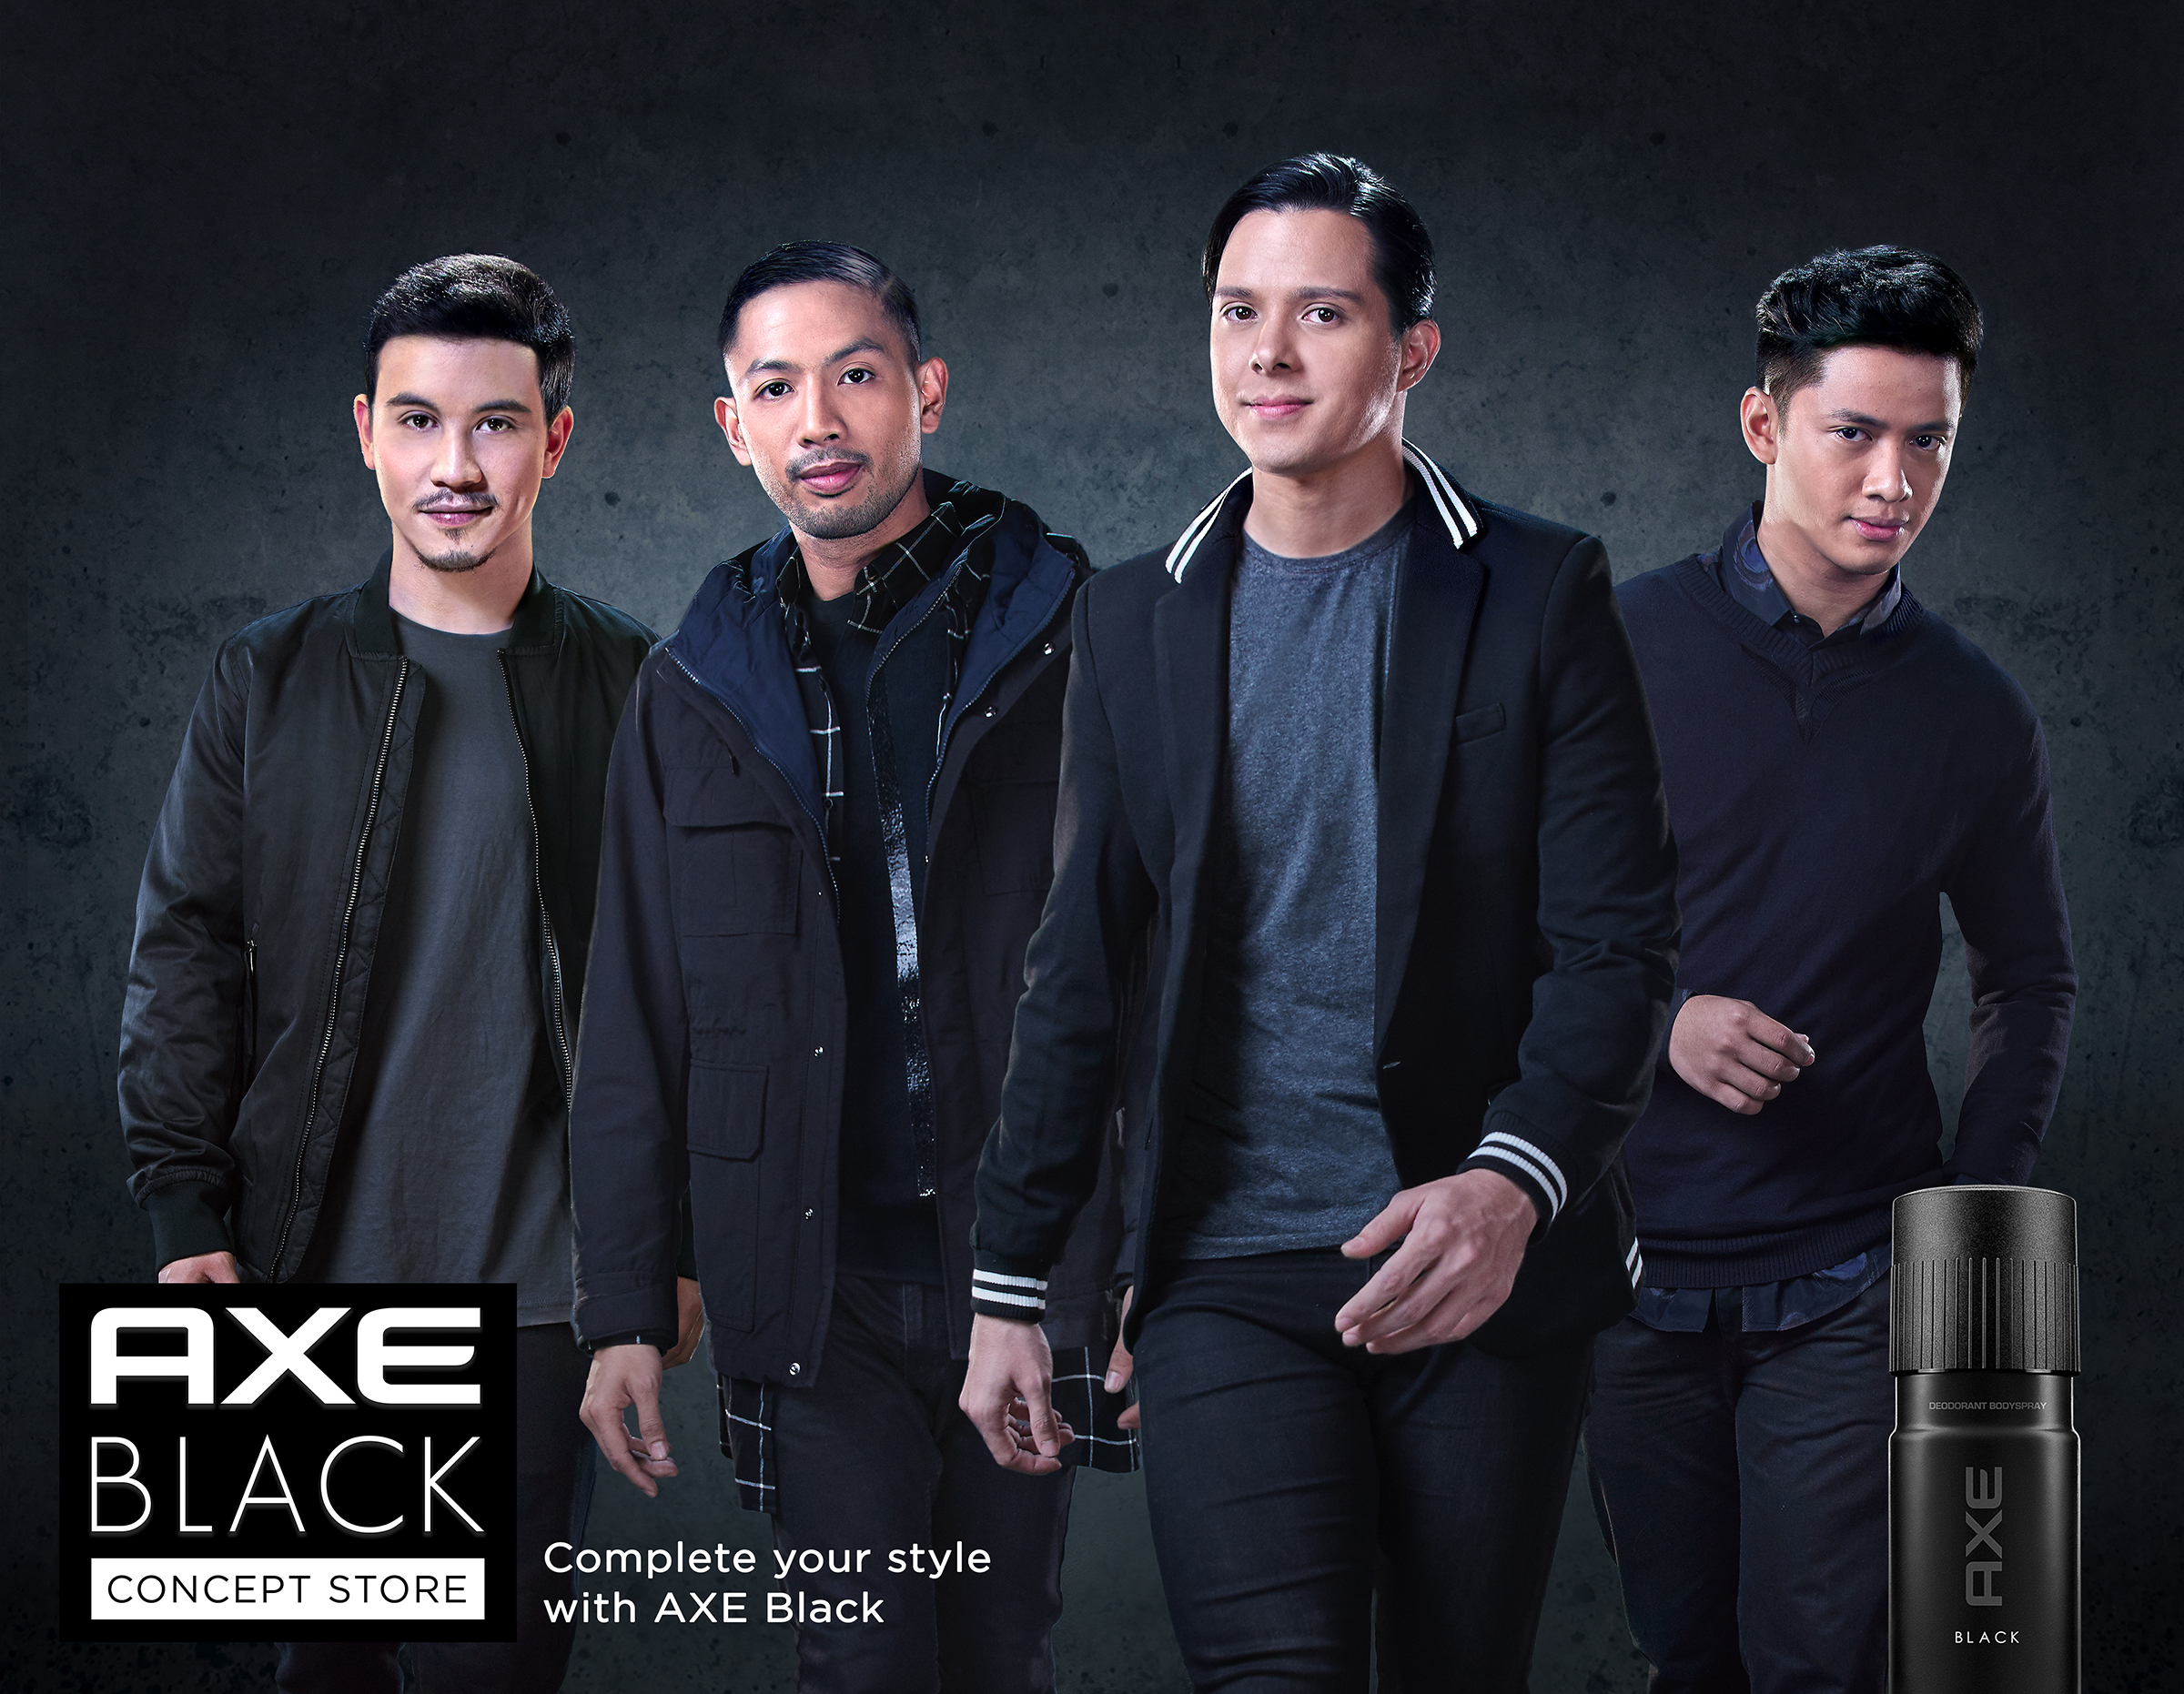 axe black group horizontal